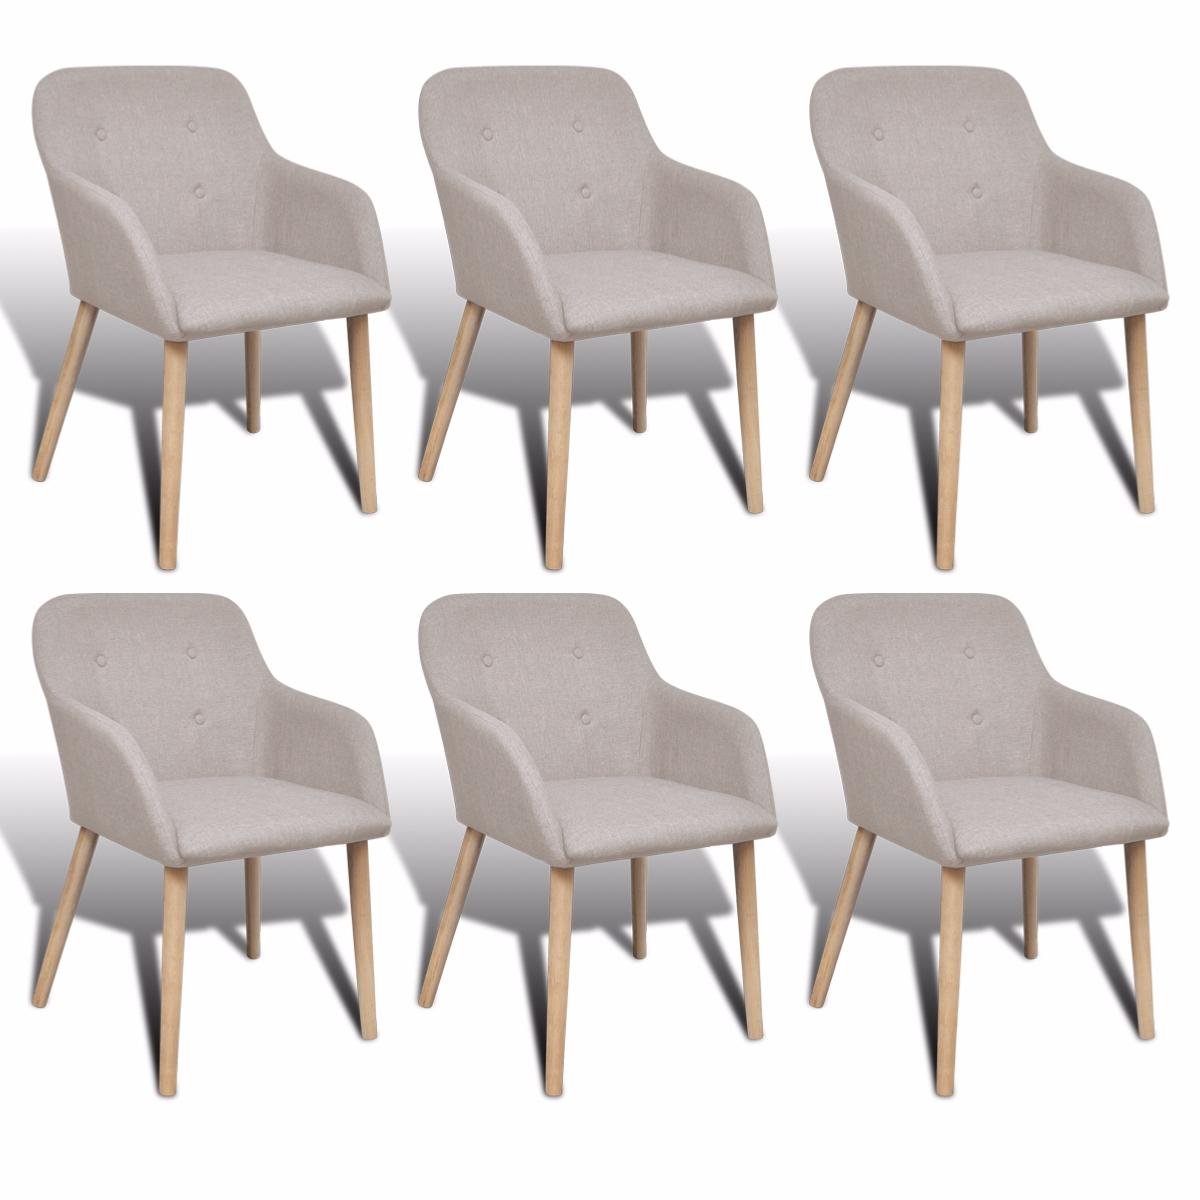 Lot de 6 chaises scandinave cielterre commerce for 6 chaises scandinaves